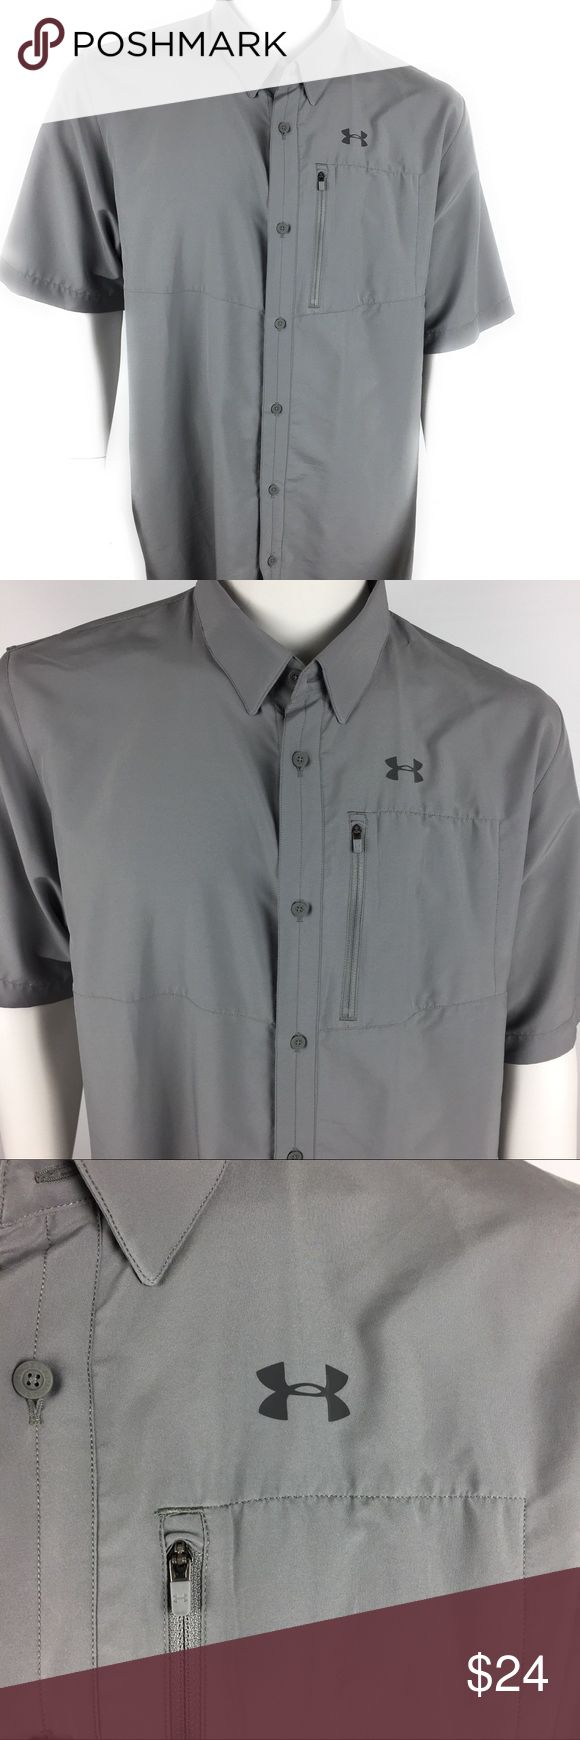 Under Armour Vented Shirt Men's Under Armour Offshore Fishing Shirt Heatgear 1235477 Gray Vented Size XL   Measurements (in inches) are as follows:  Armpit to armpit: 24.5 Loose fit Left breast pocket w/ zipper Button Front HeatGear Bin: MC8 Under Armour Shirts Casual Button Down Shirts